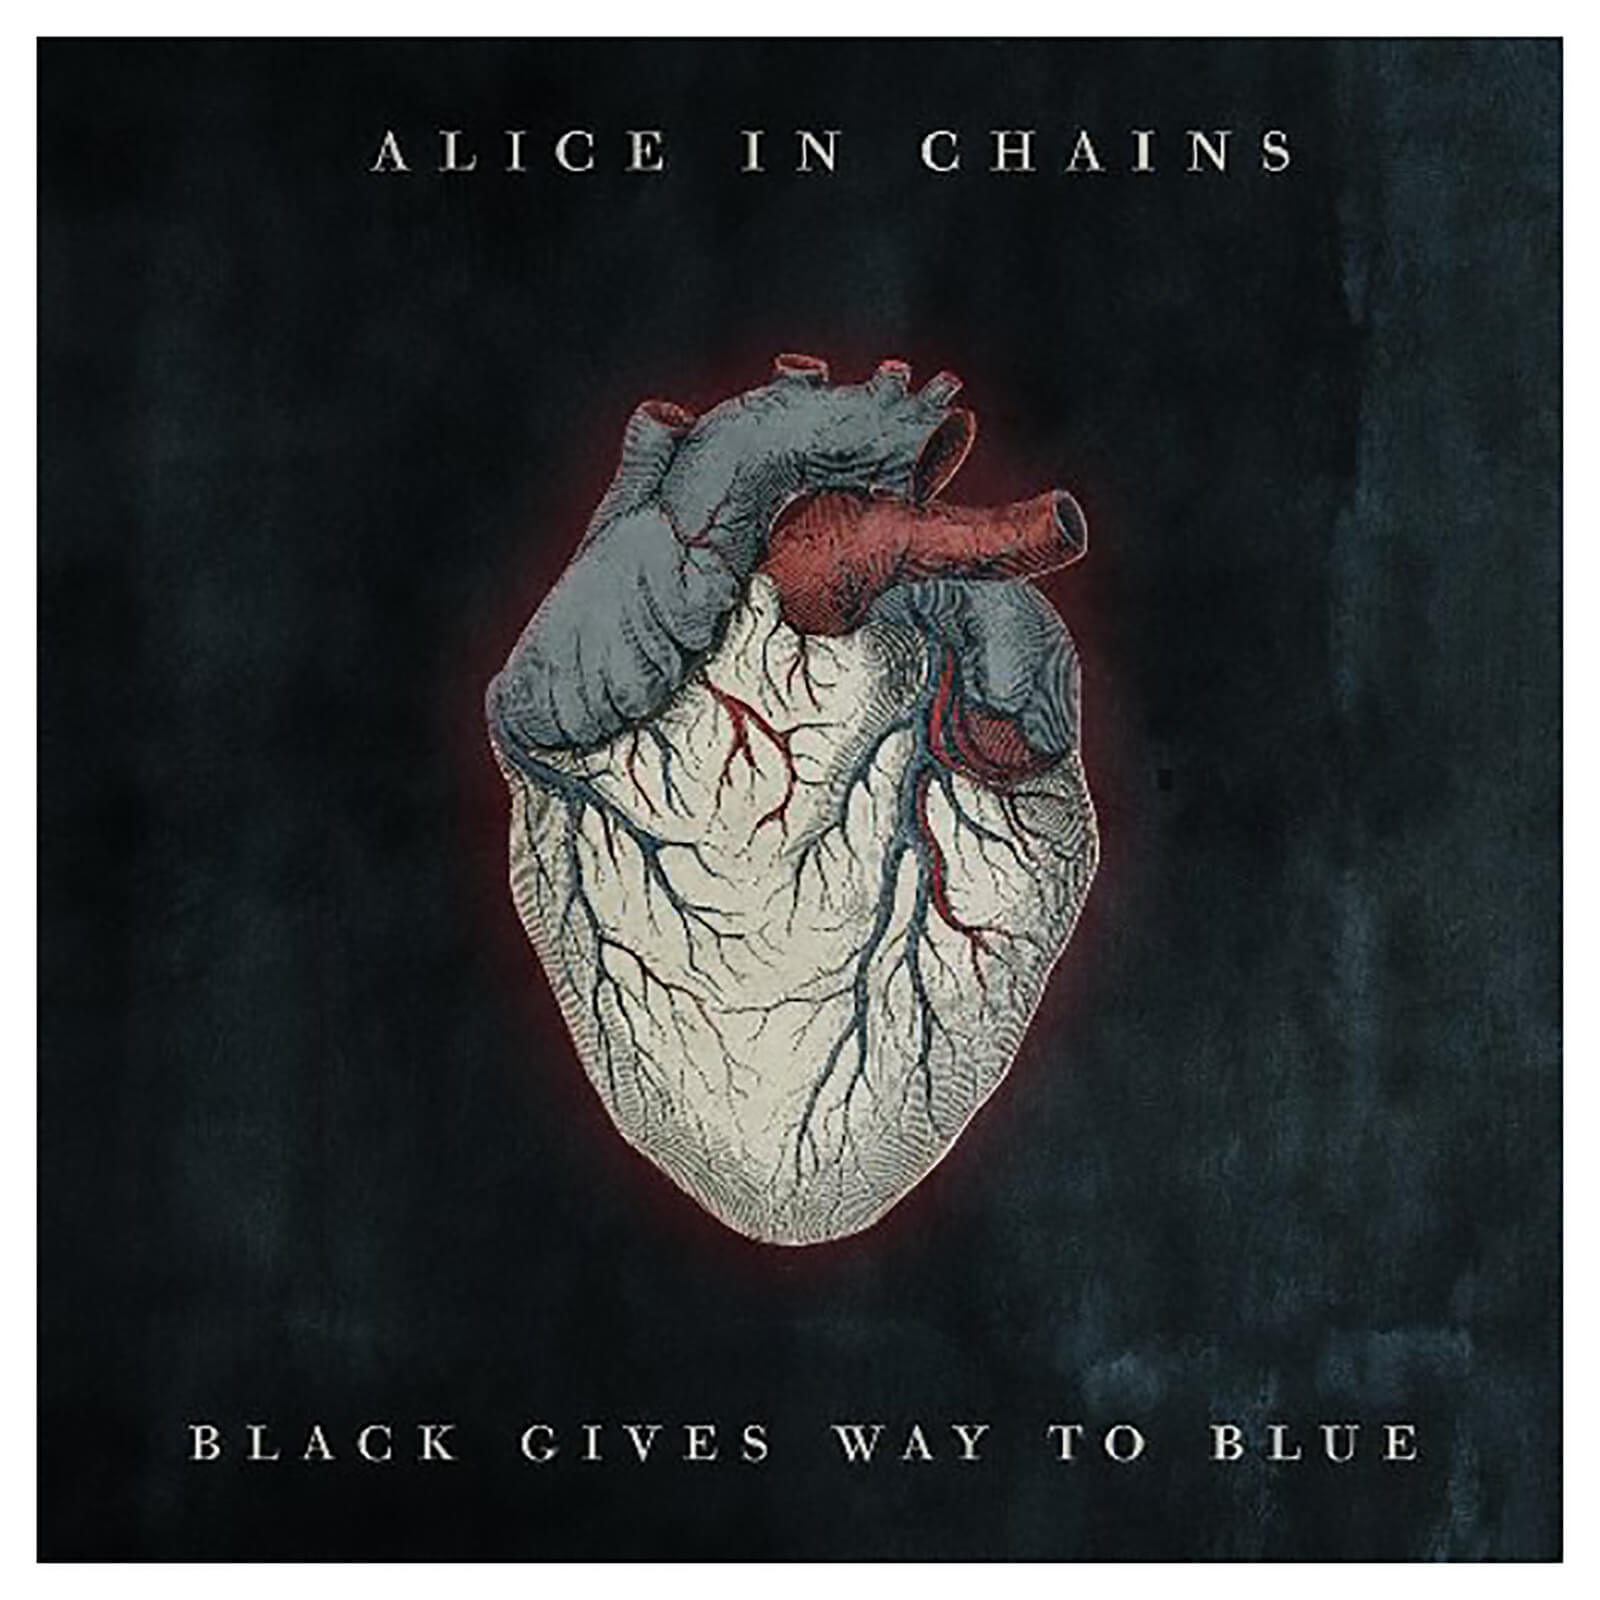 Alice In Chains - Black Gives Way To Blue - Vinyl